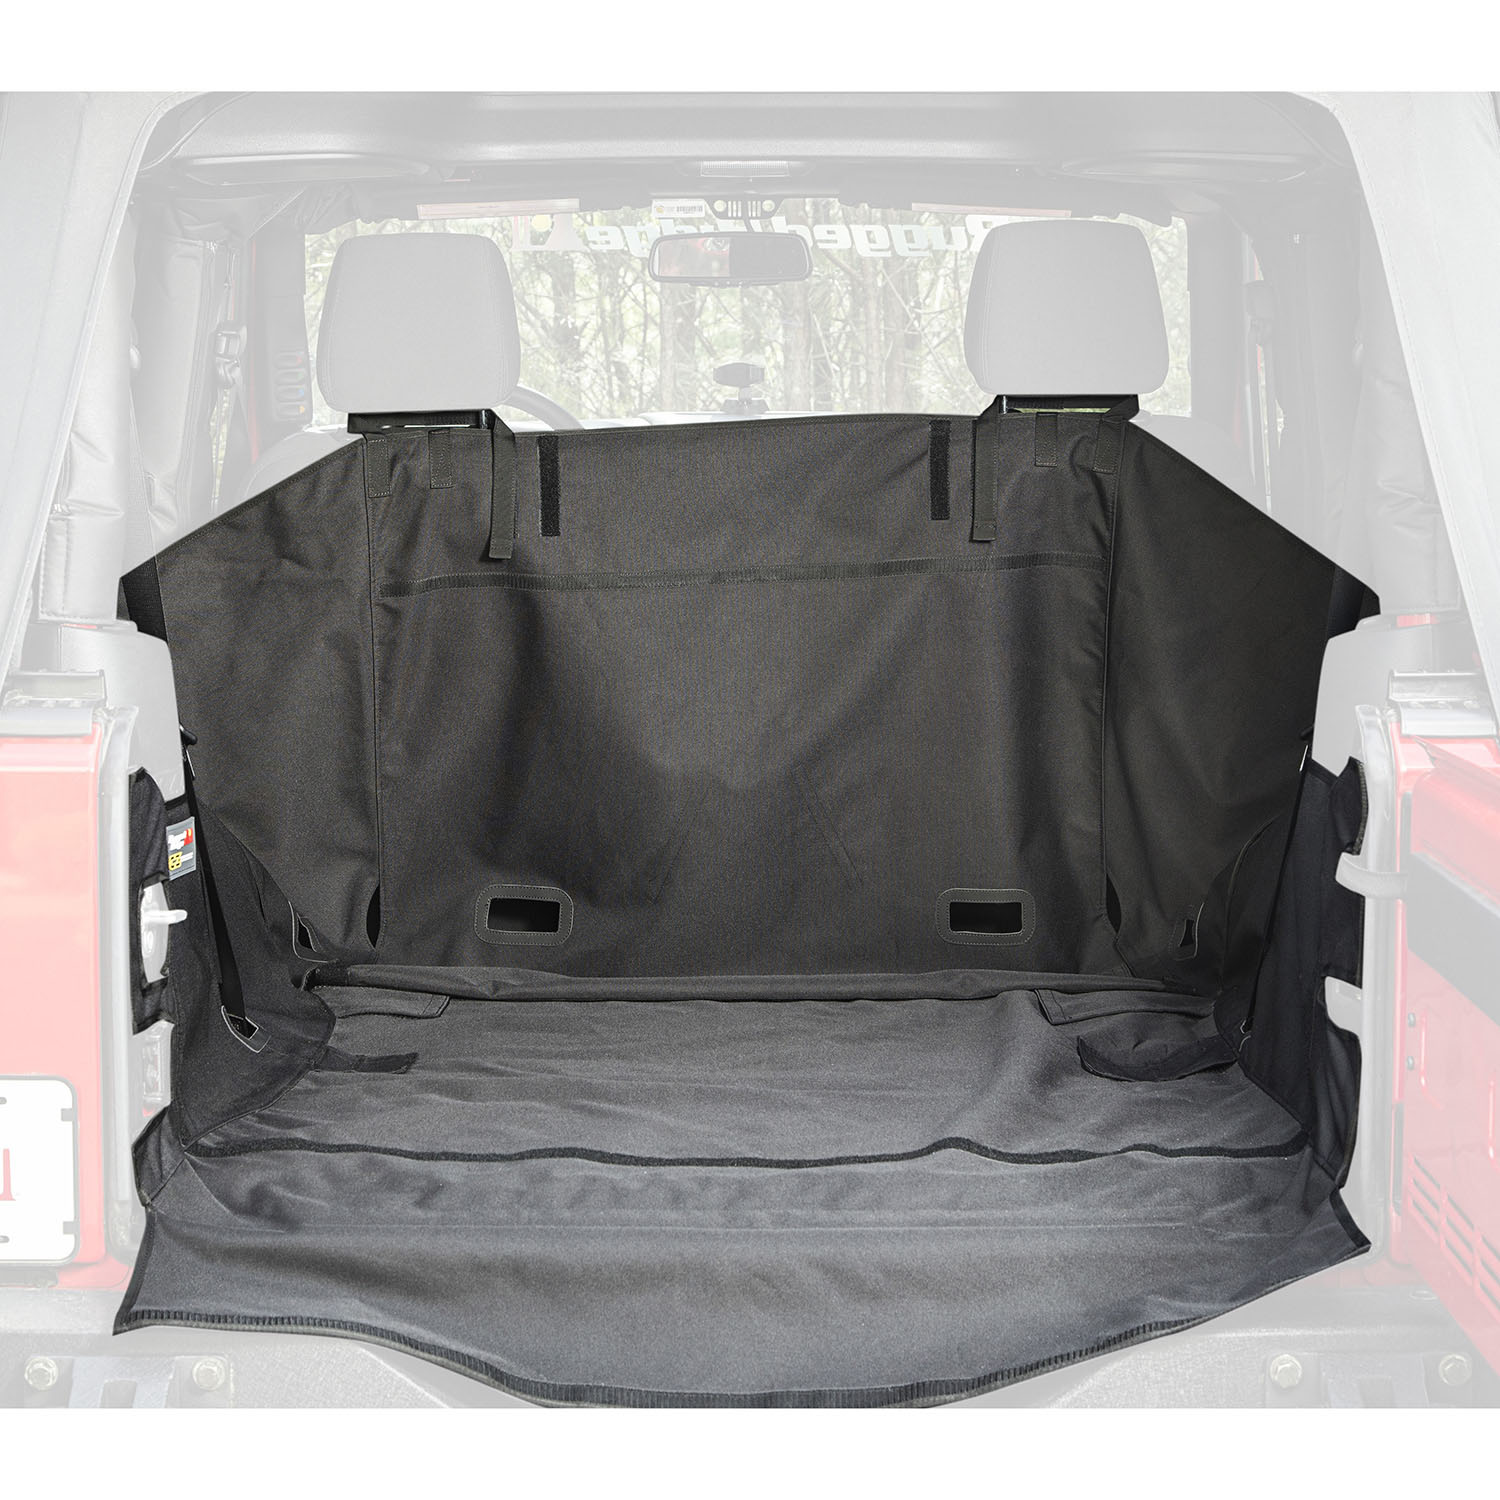 C3 Cargo Cover No Subwoofer 07-18 Jeep Wrangler JK 2 Door Get FREE C3 tailgate Cover (13260.09) with JK C3 Cargo Cover